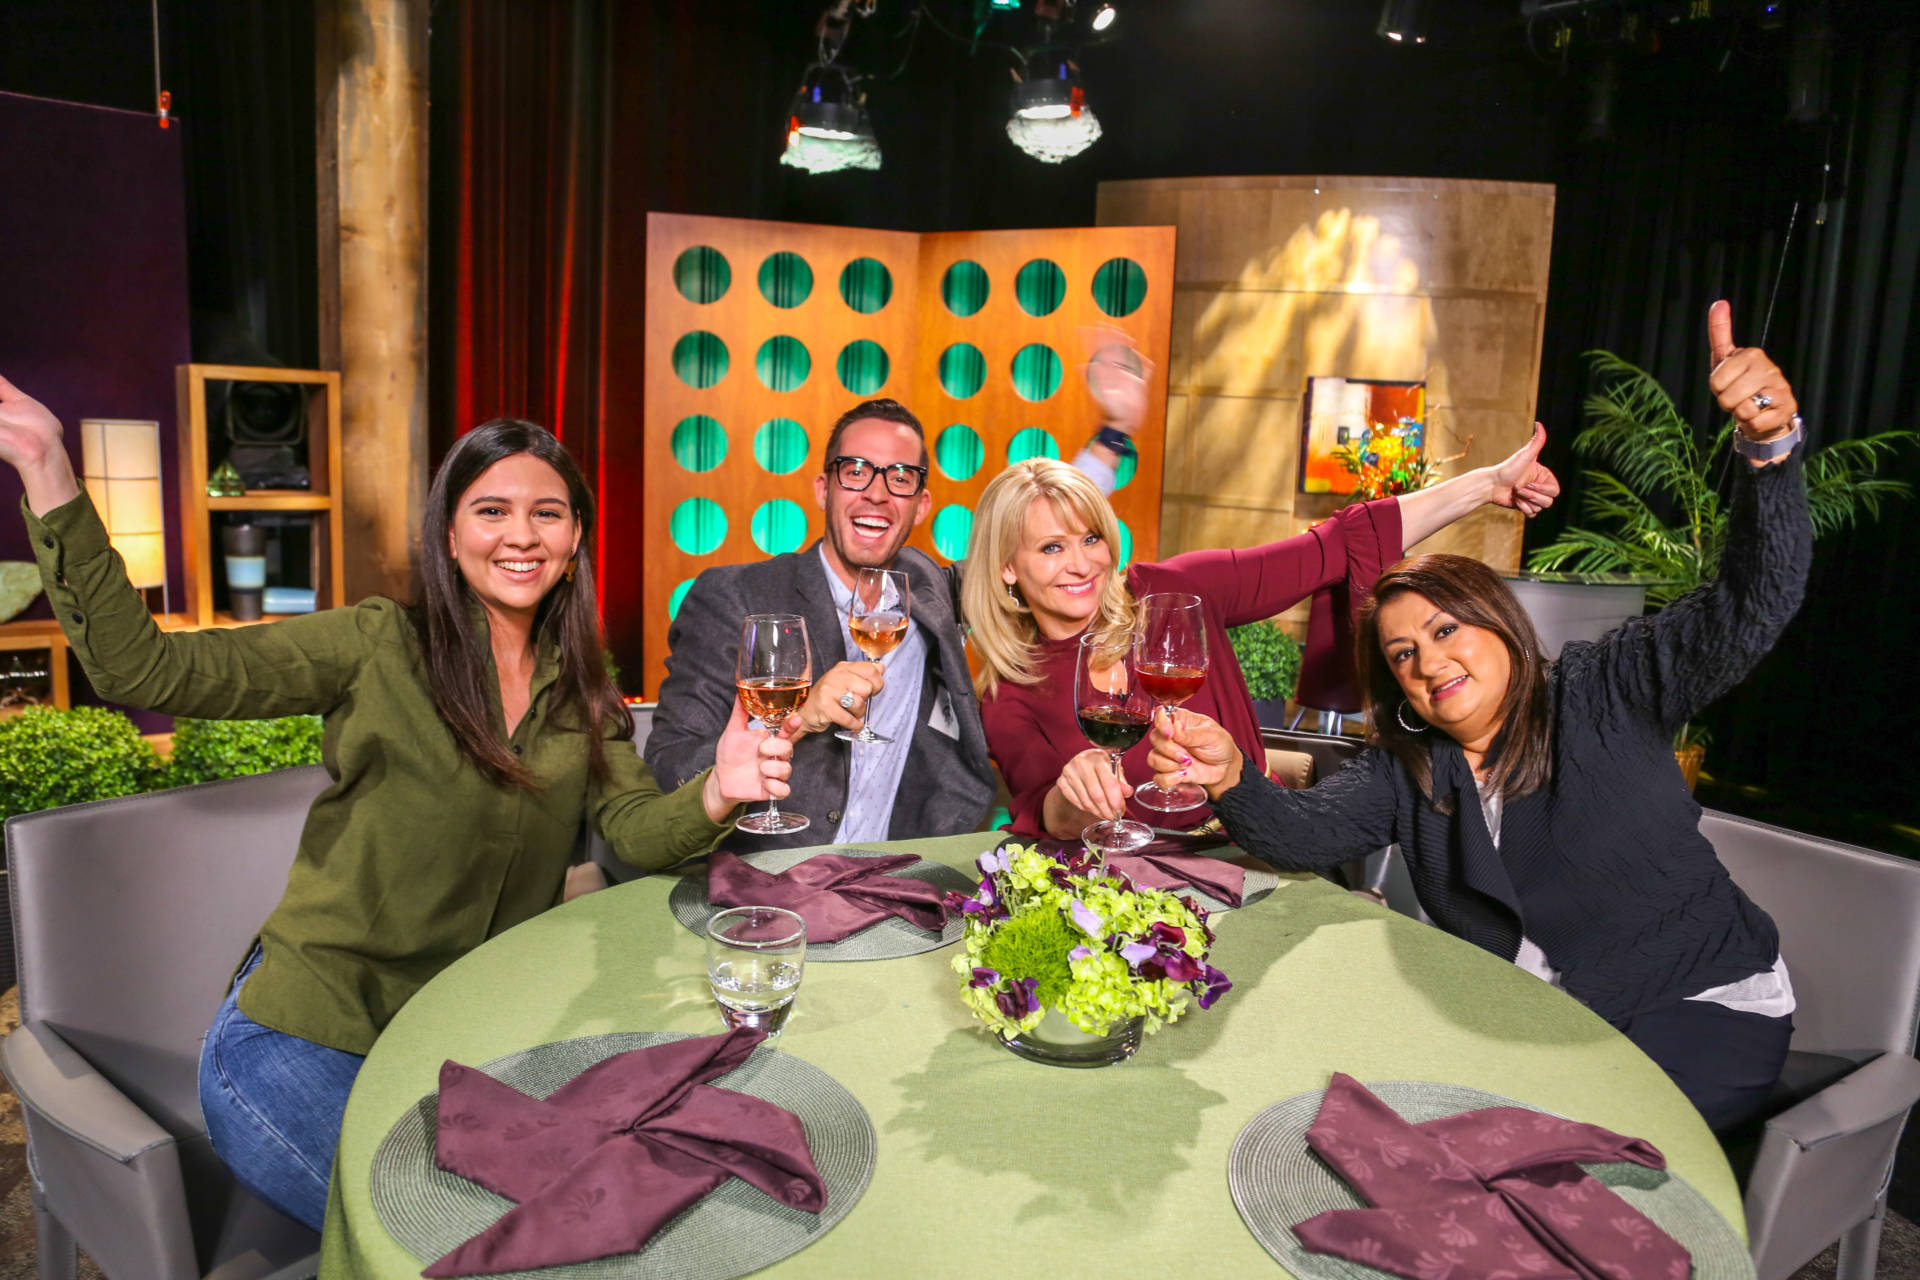 Host Leslie Sbrocco and guests on the set of season 13 episode 14.